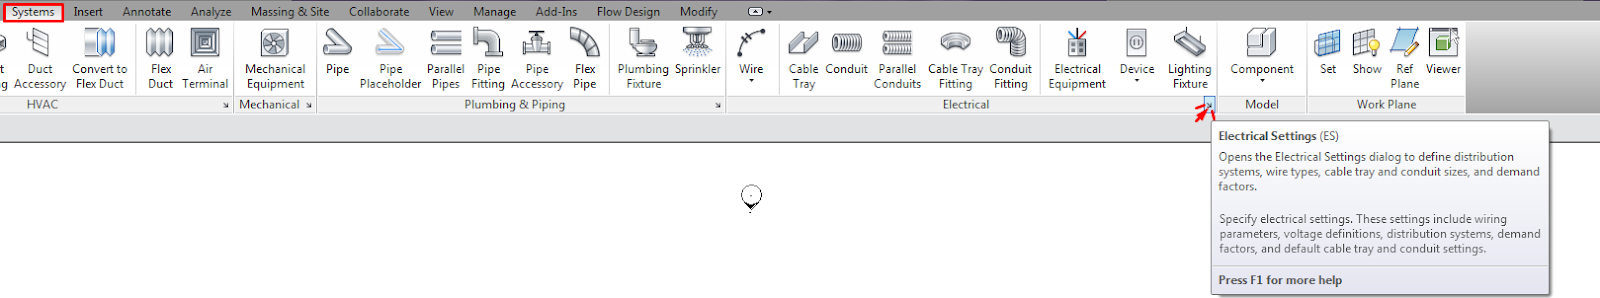 Electrical Systems: Configuration and General Settings in Revit